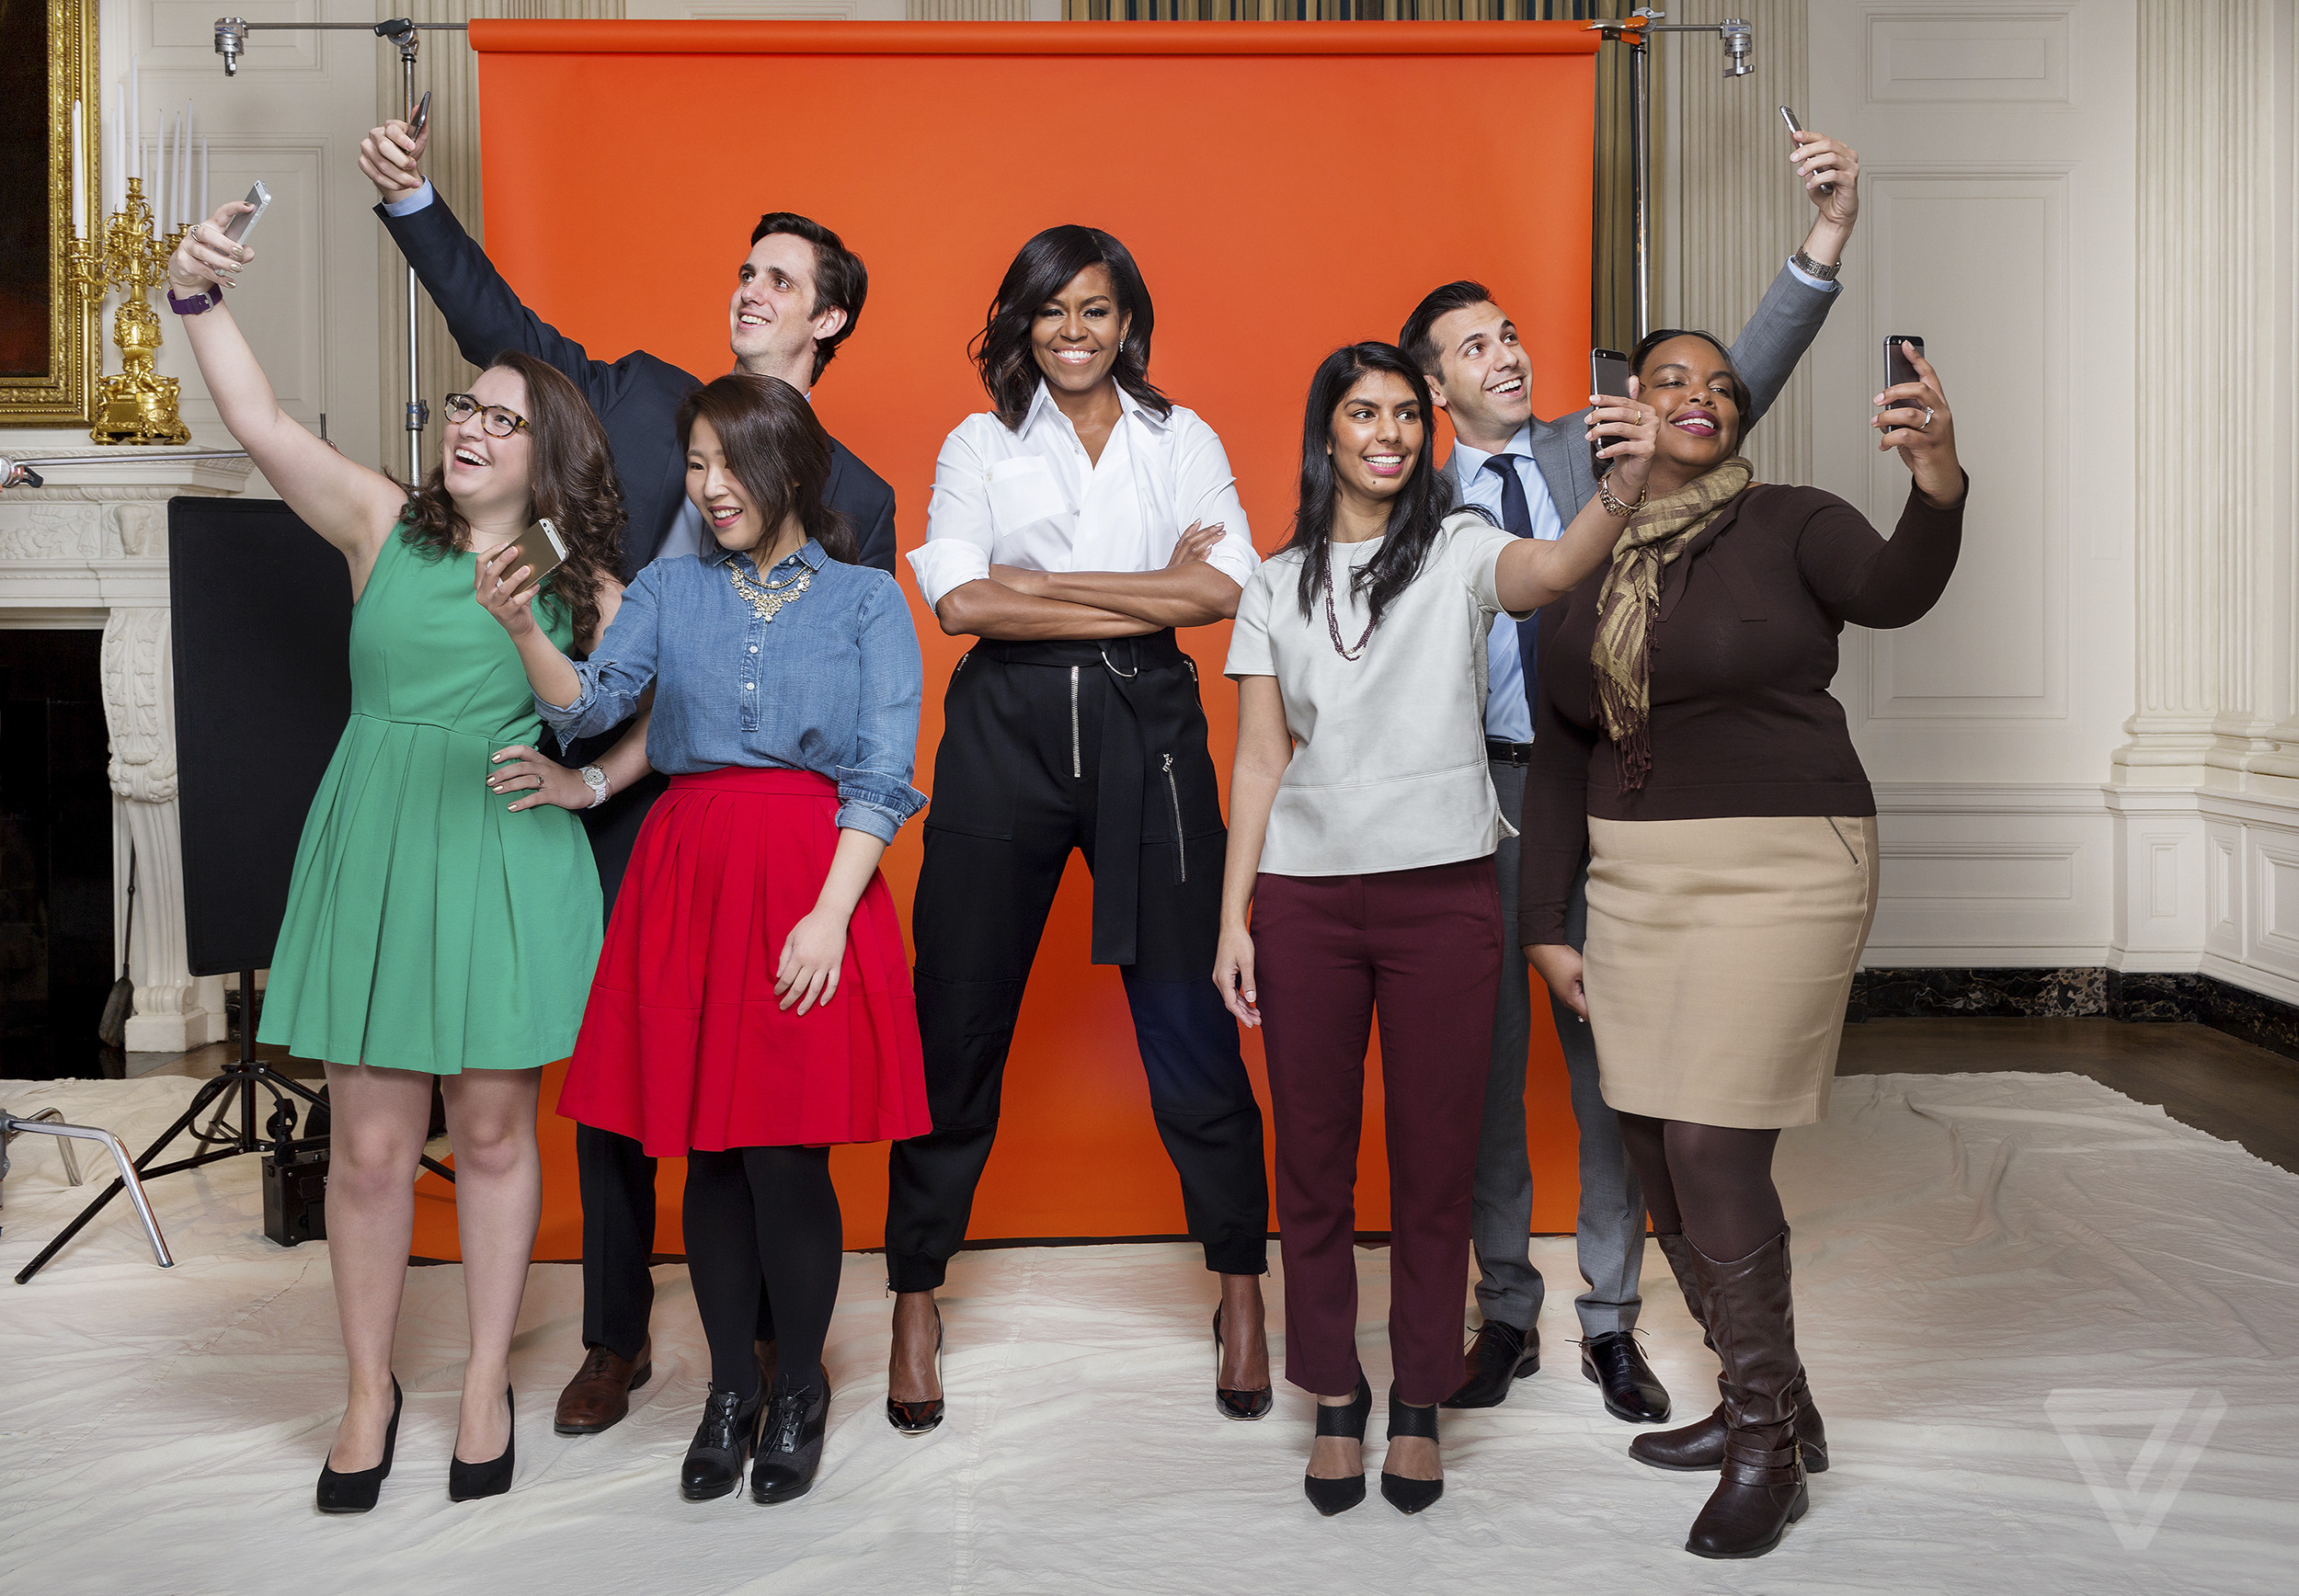 michelleobama the verge